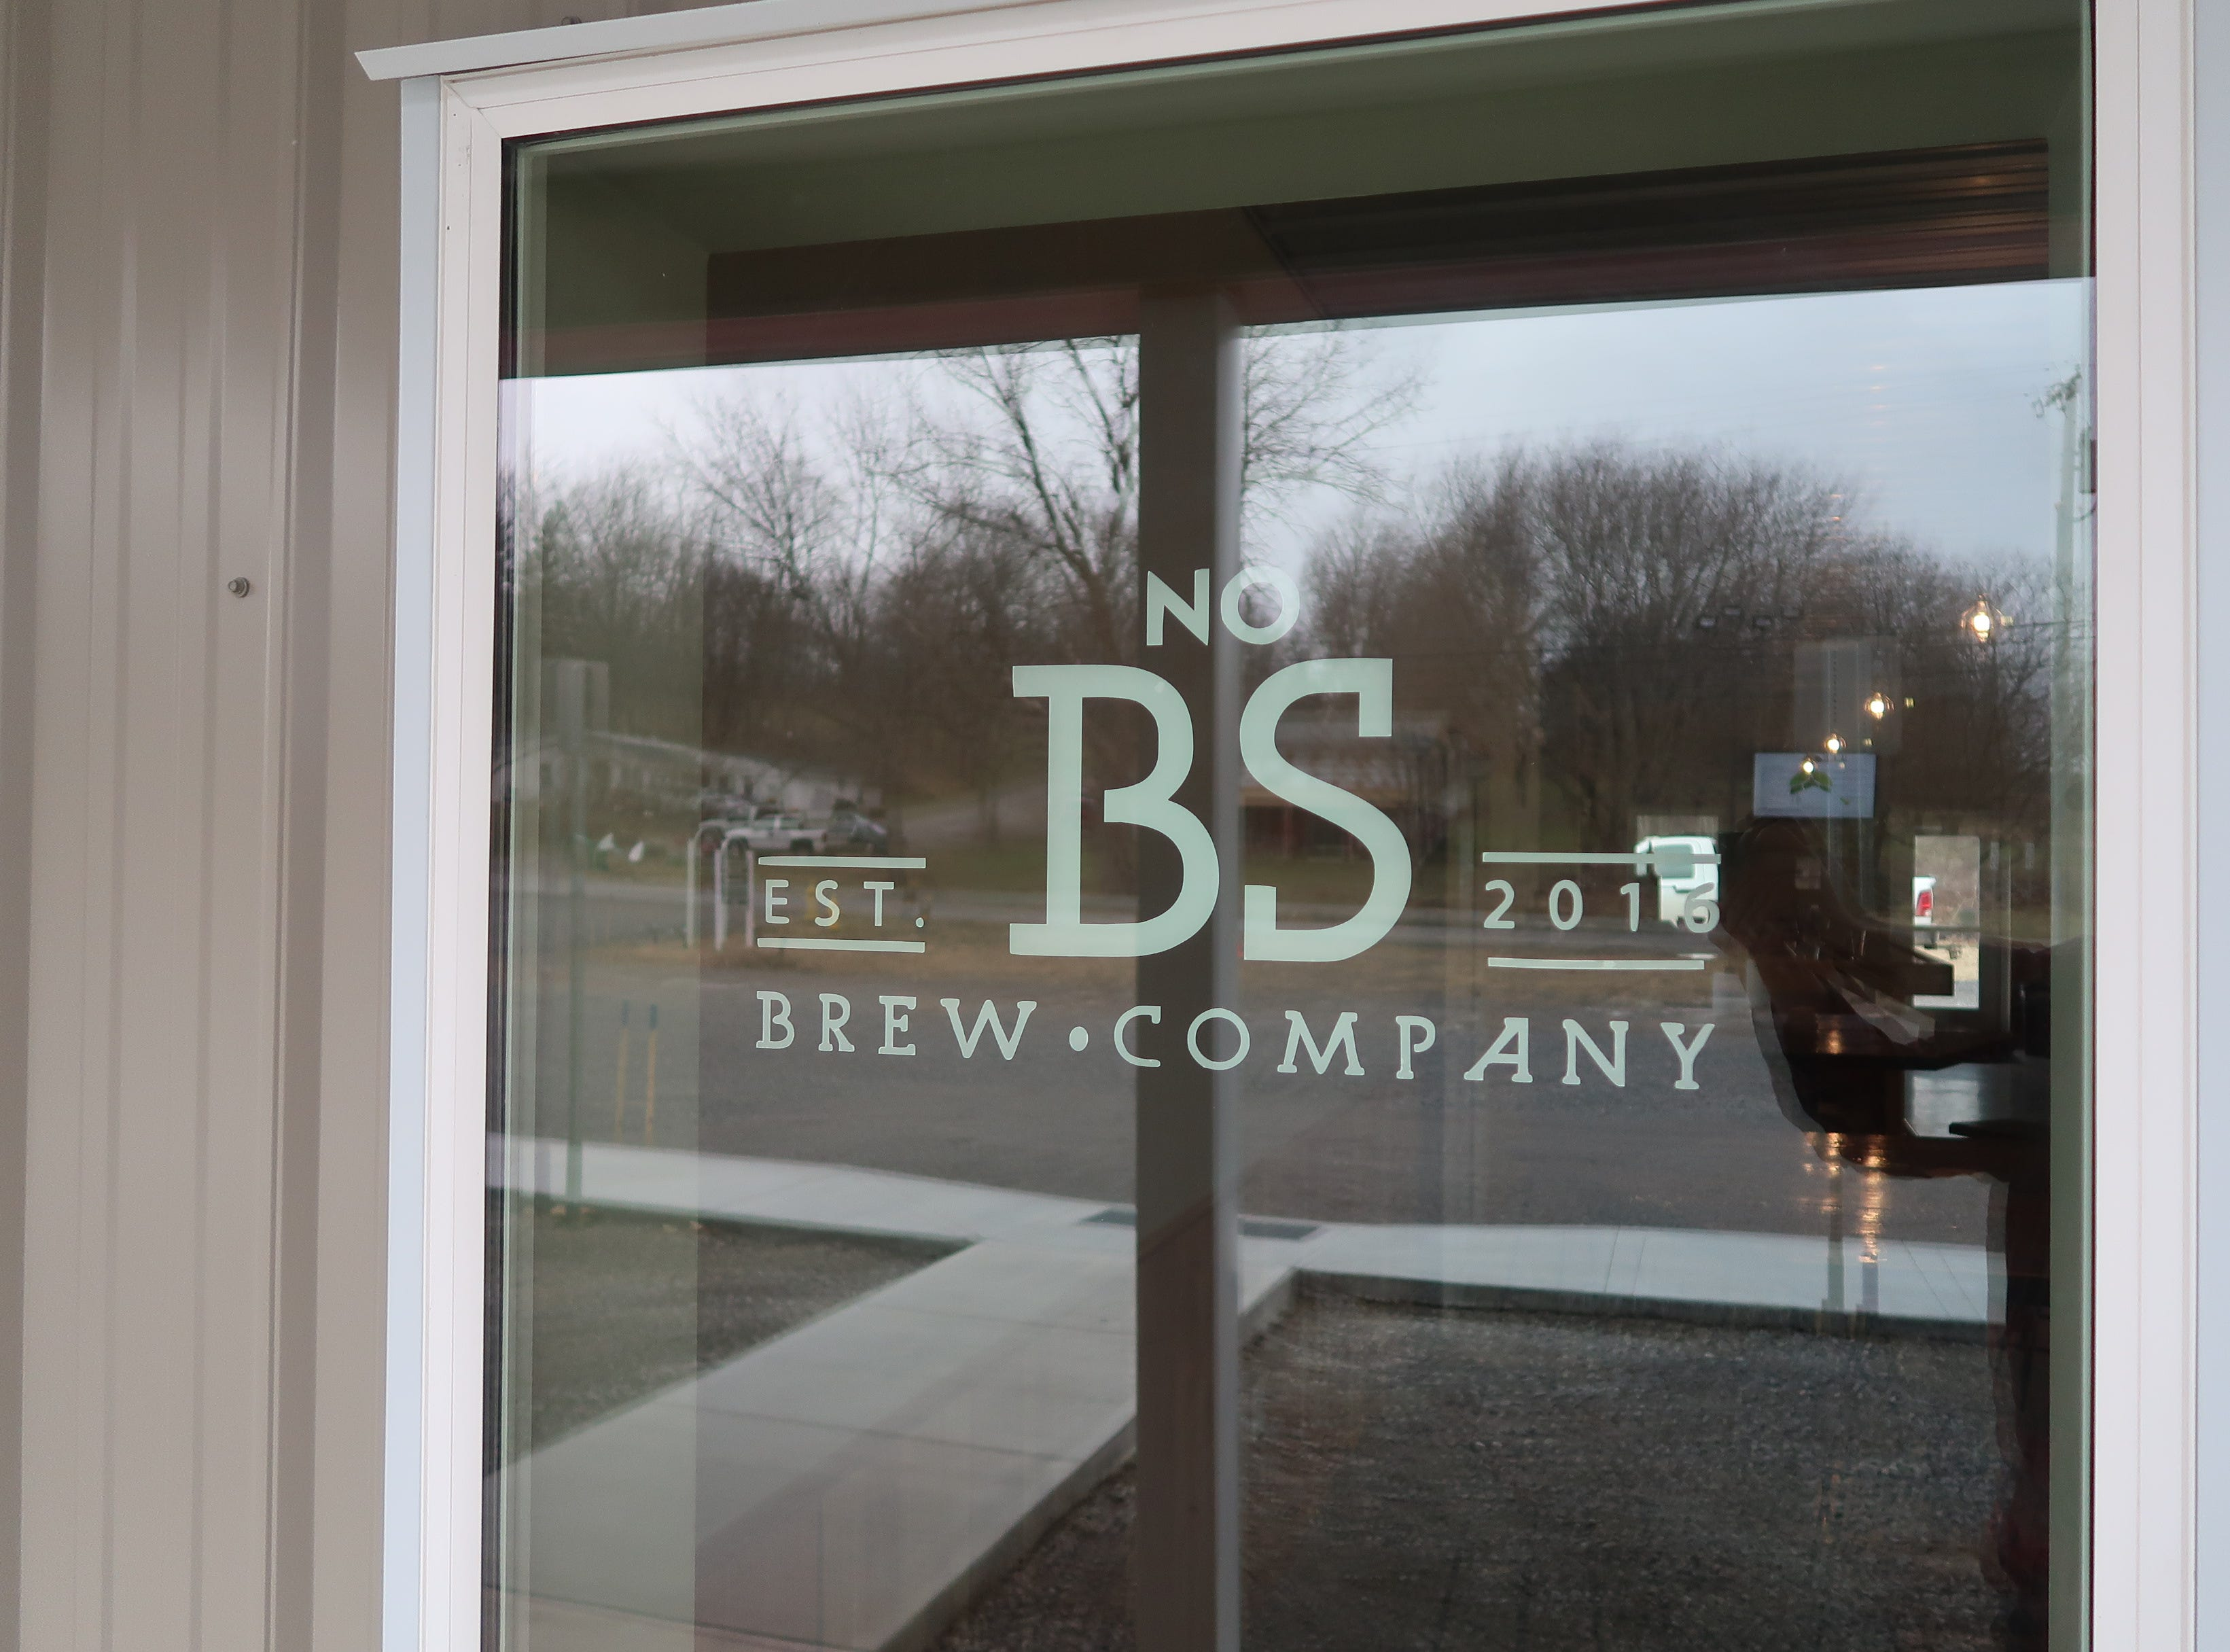 The front window at No BS Brew Company in Livonia.